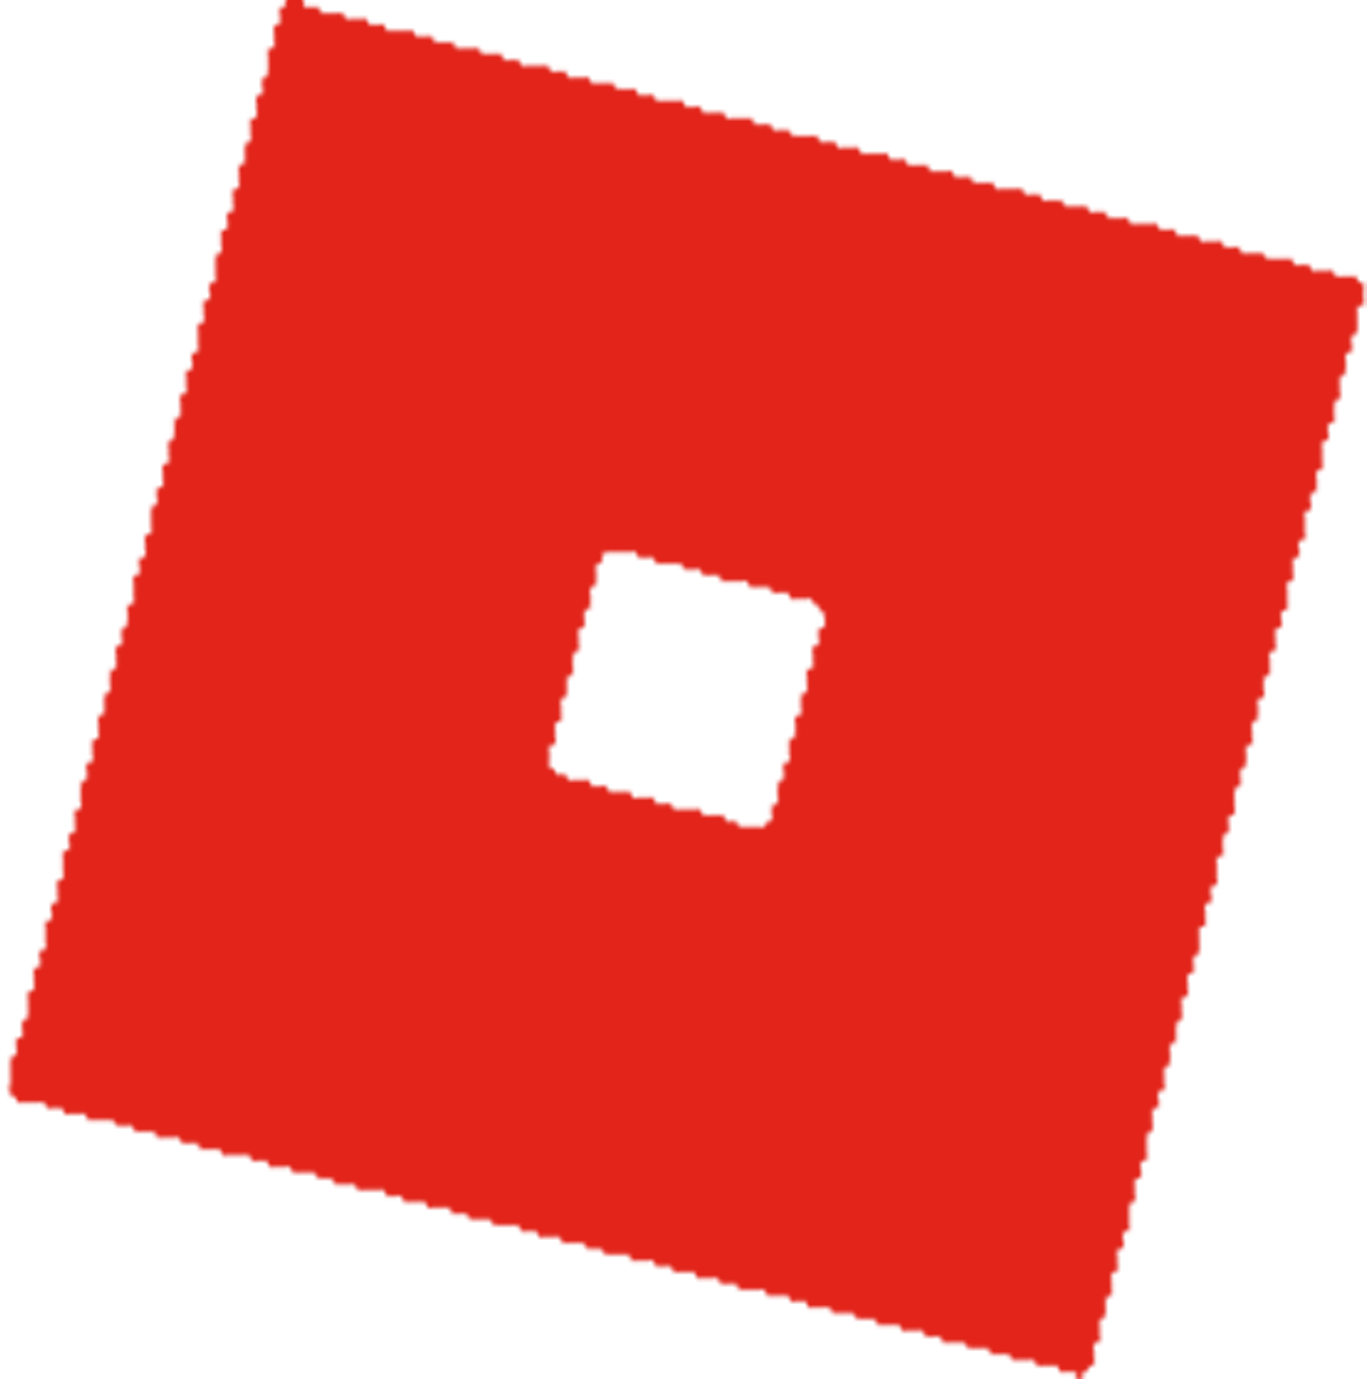 Roblox Icon Png #243099.